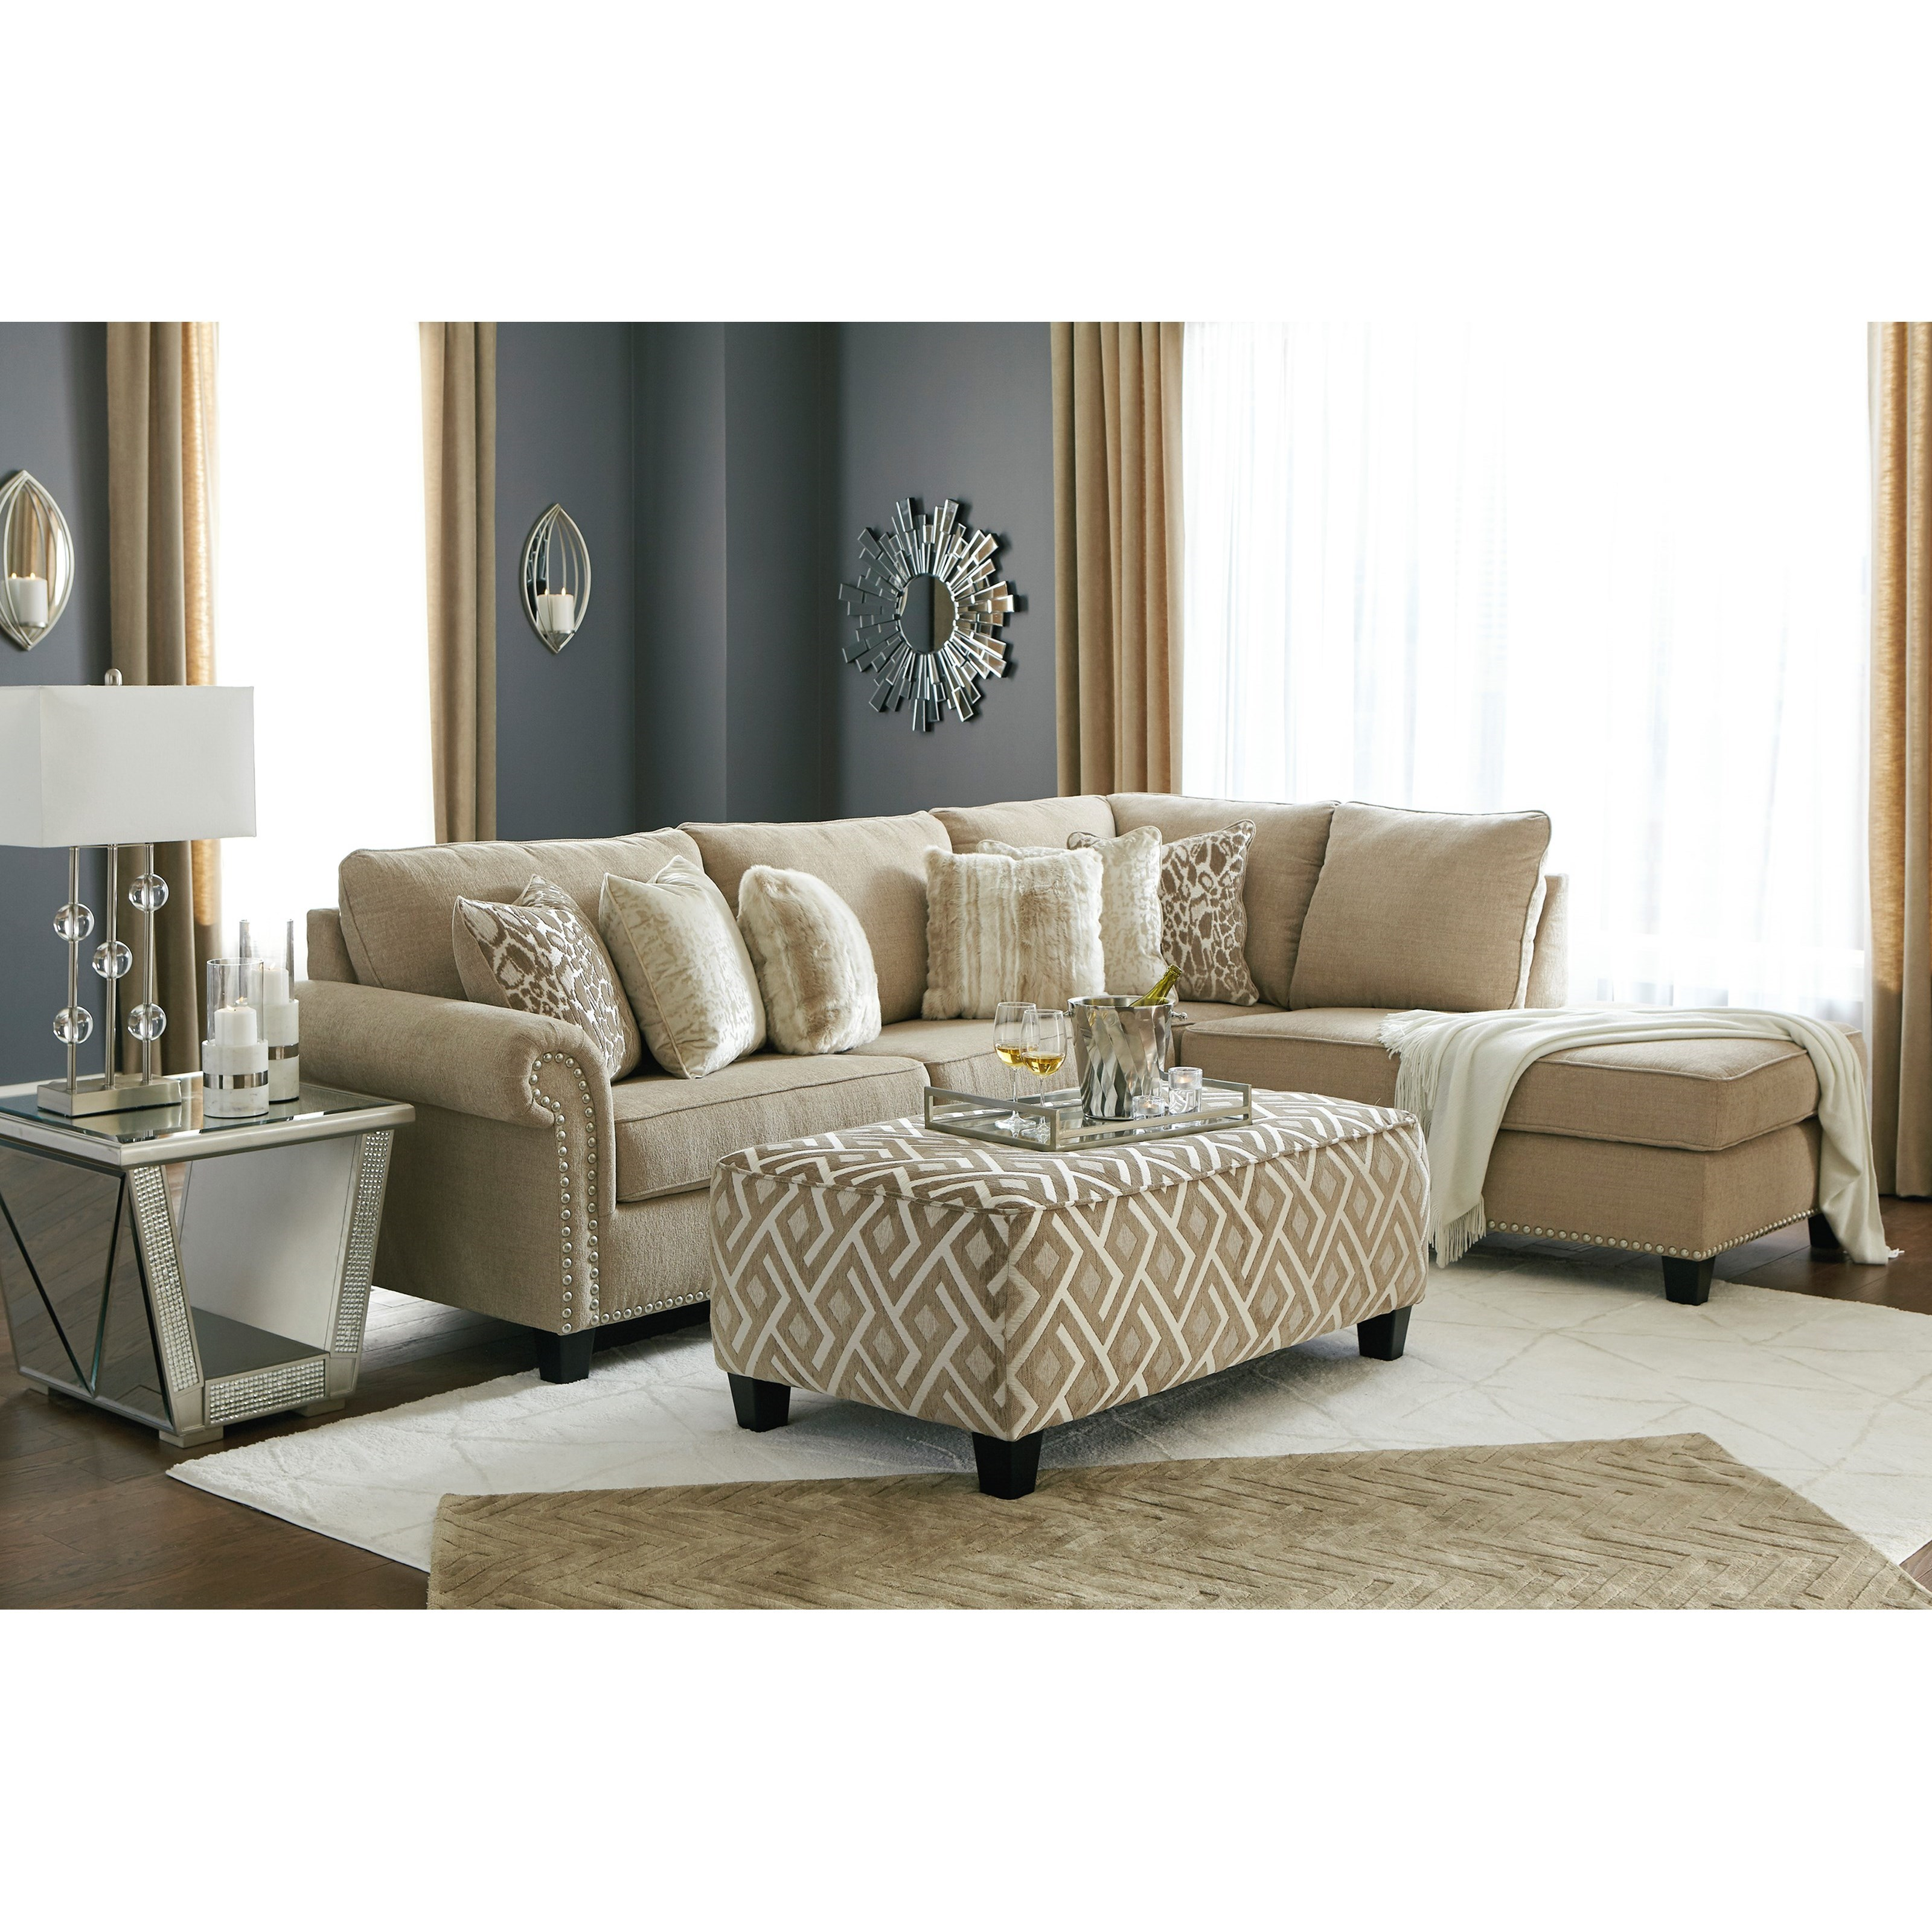 Dovemont Living Room Group by Signature Design by Ashley at Smart Buy Furniture